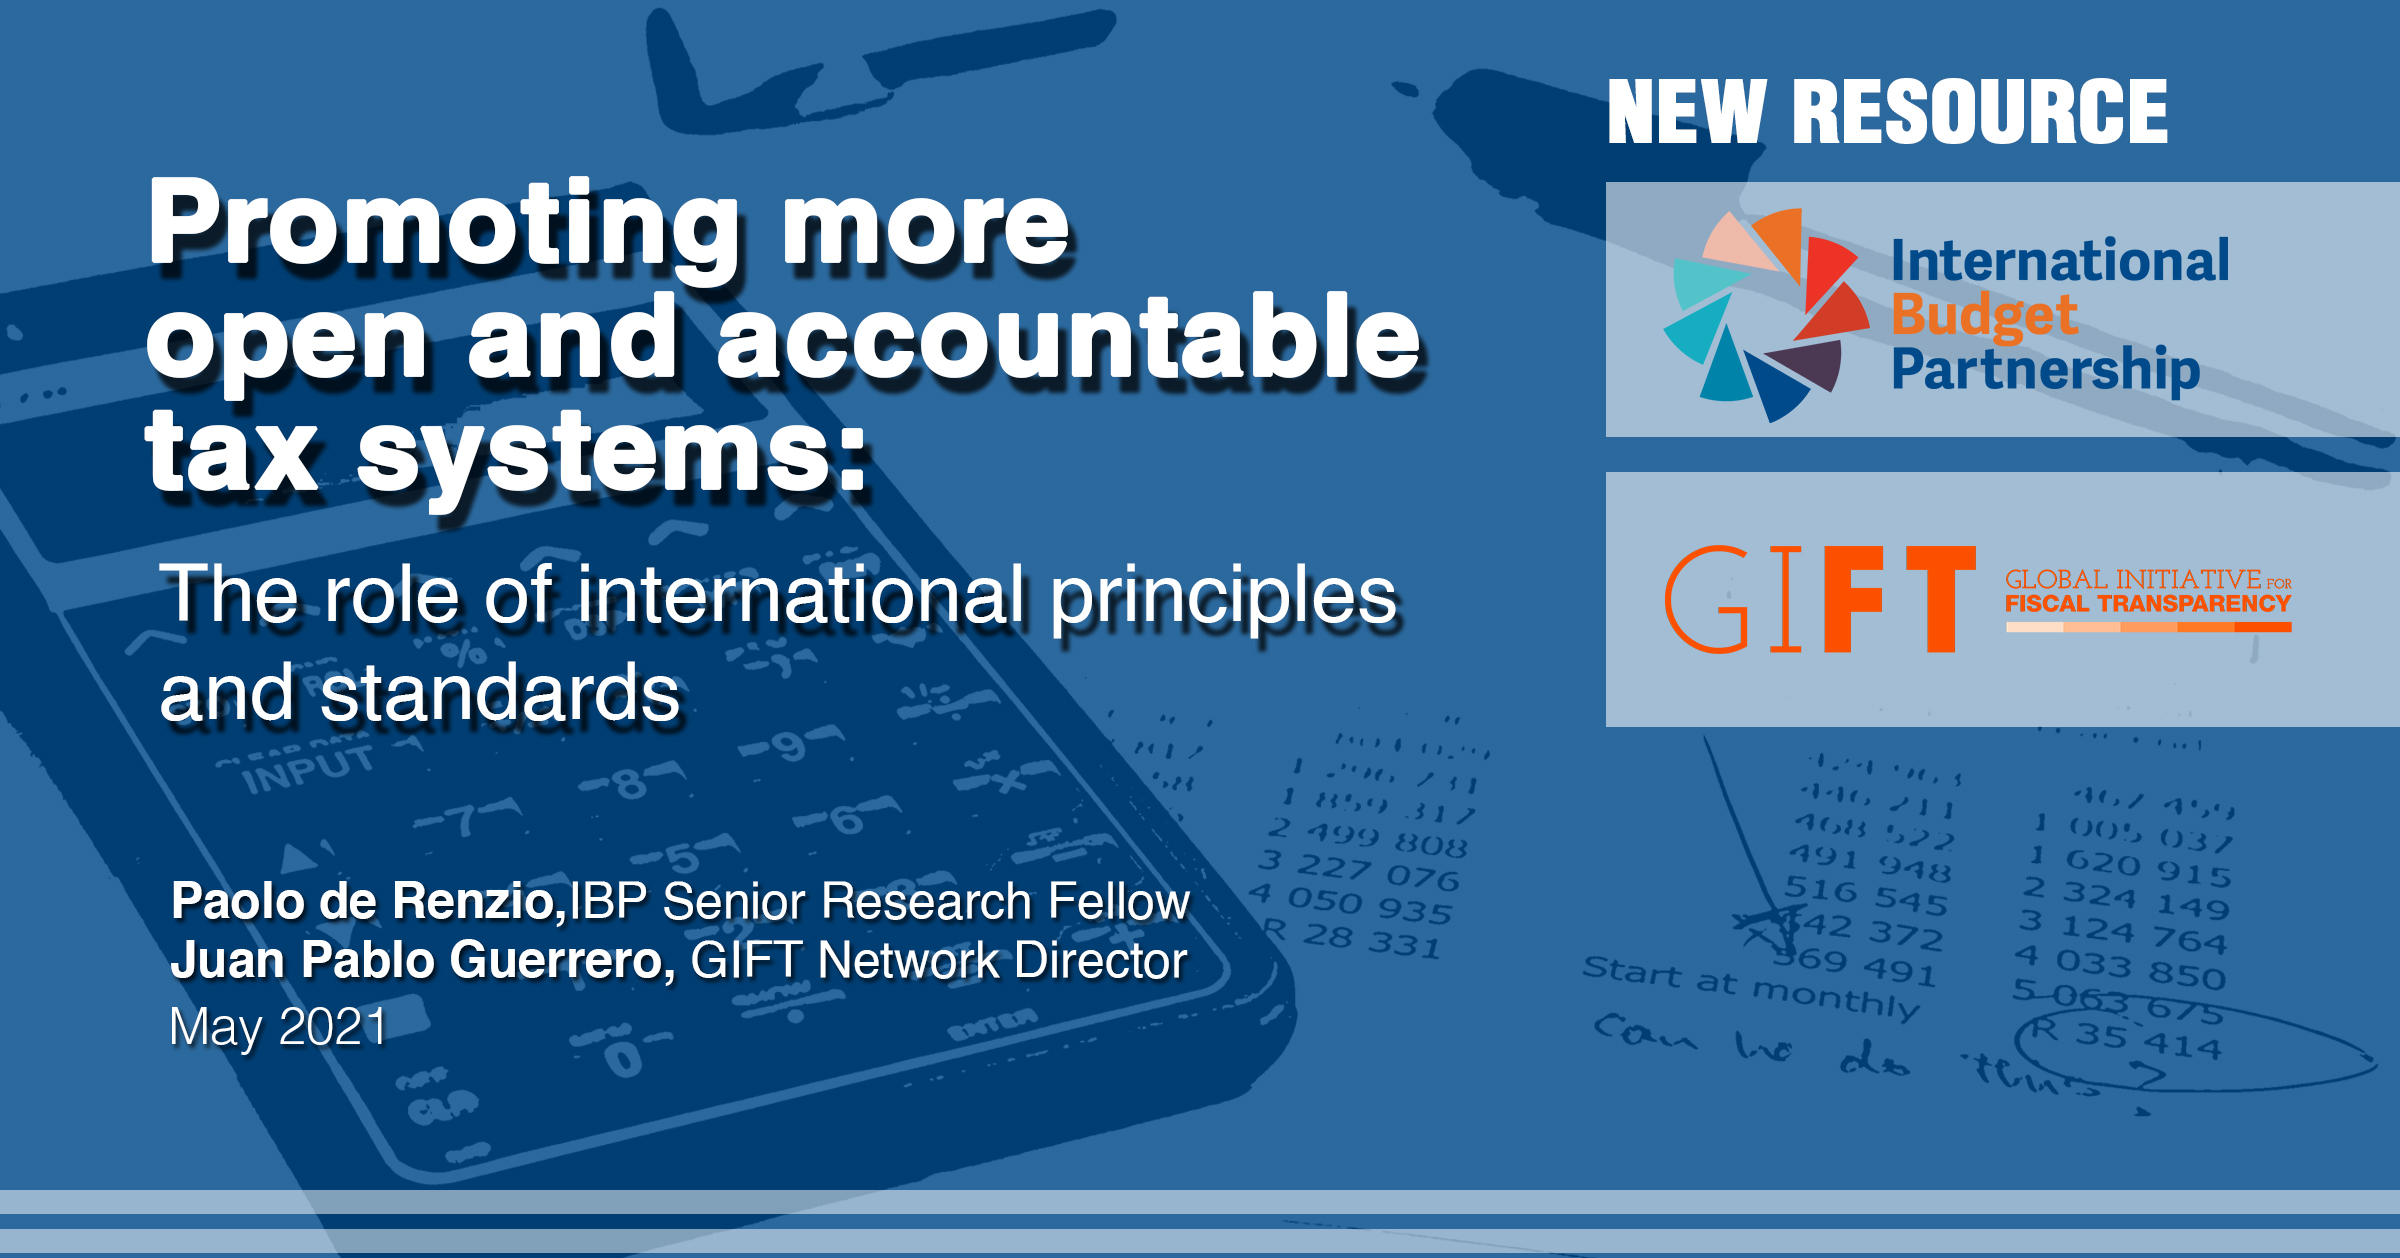 Promoting more open and accountable tax systems